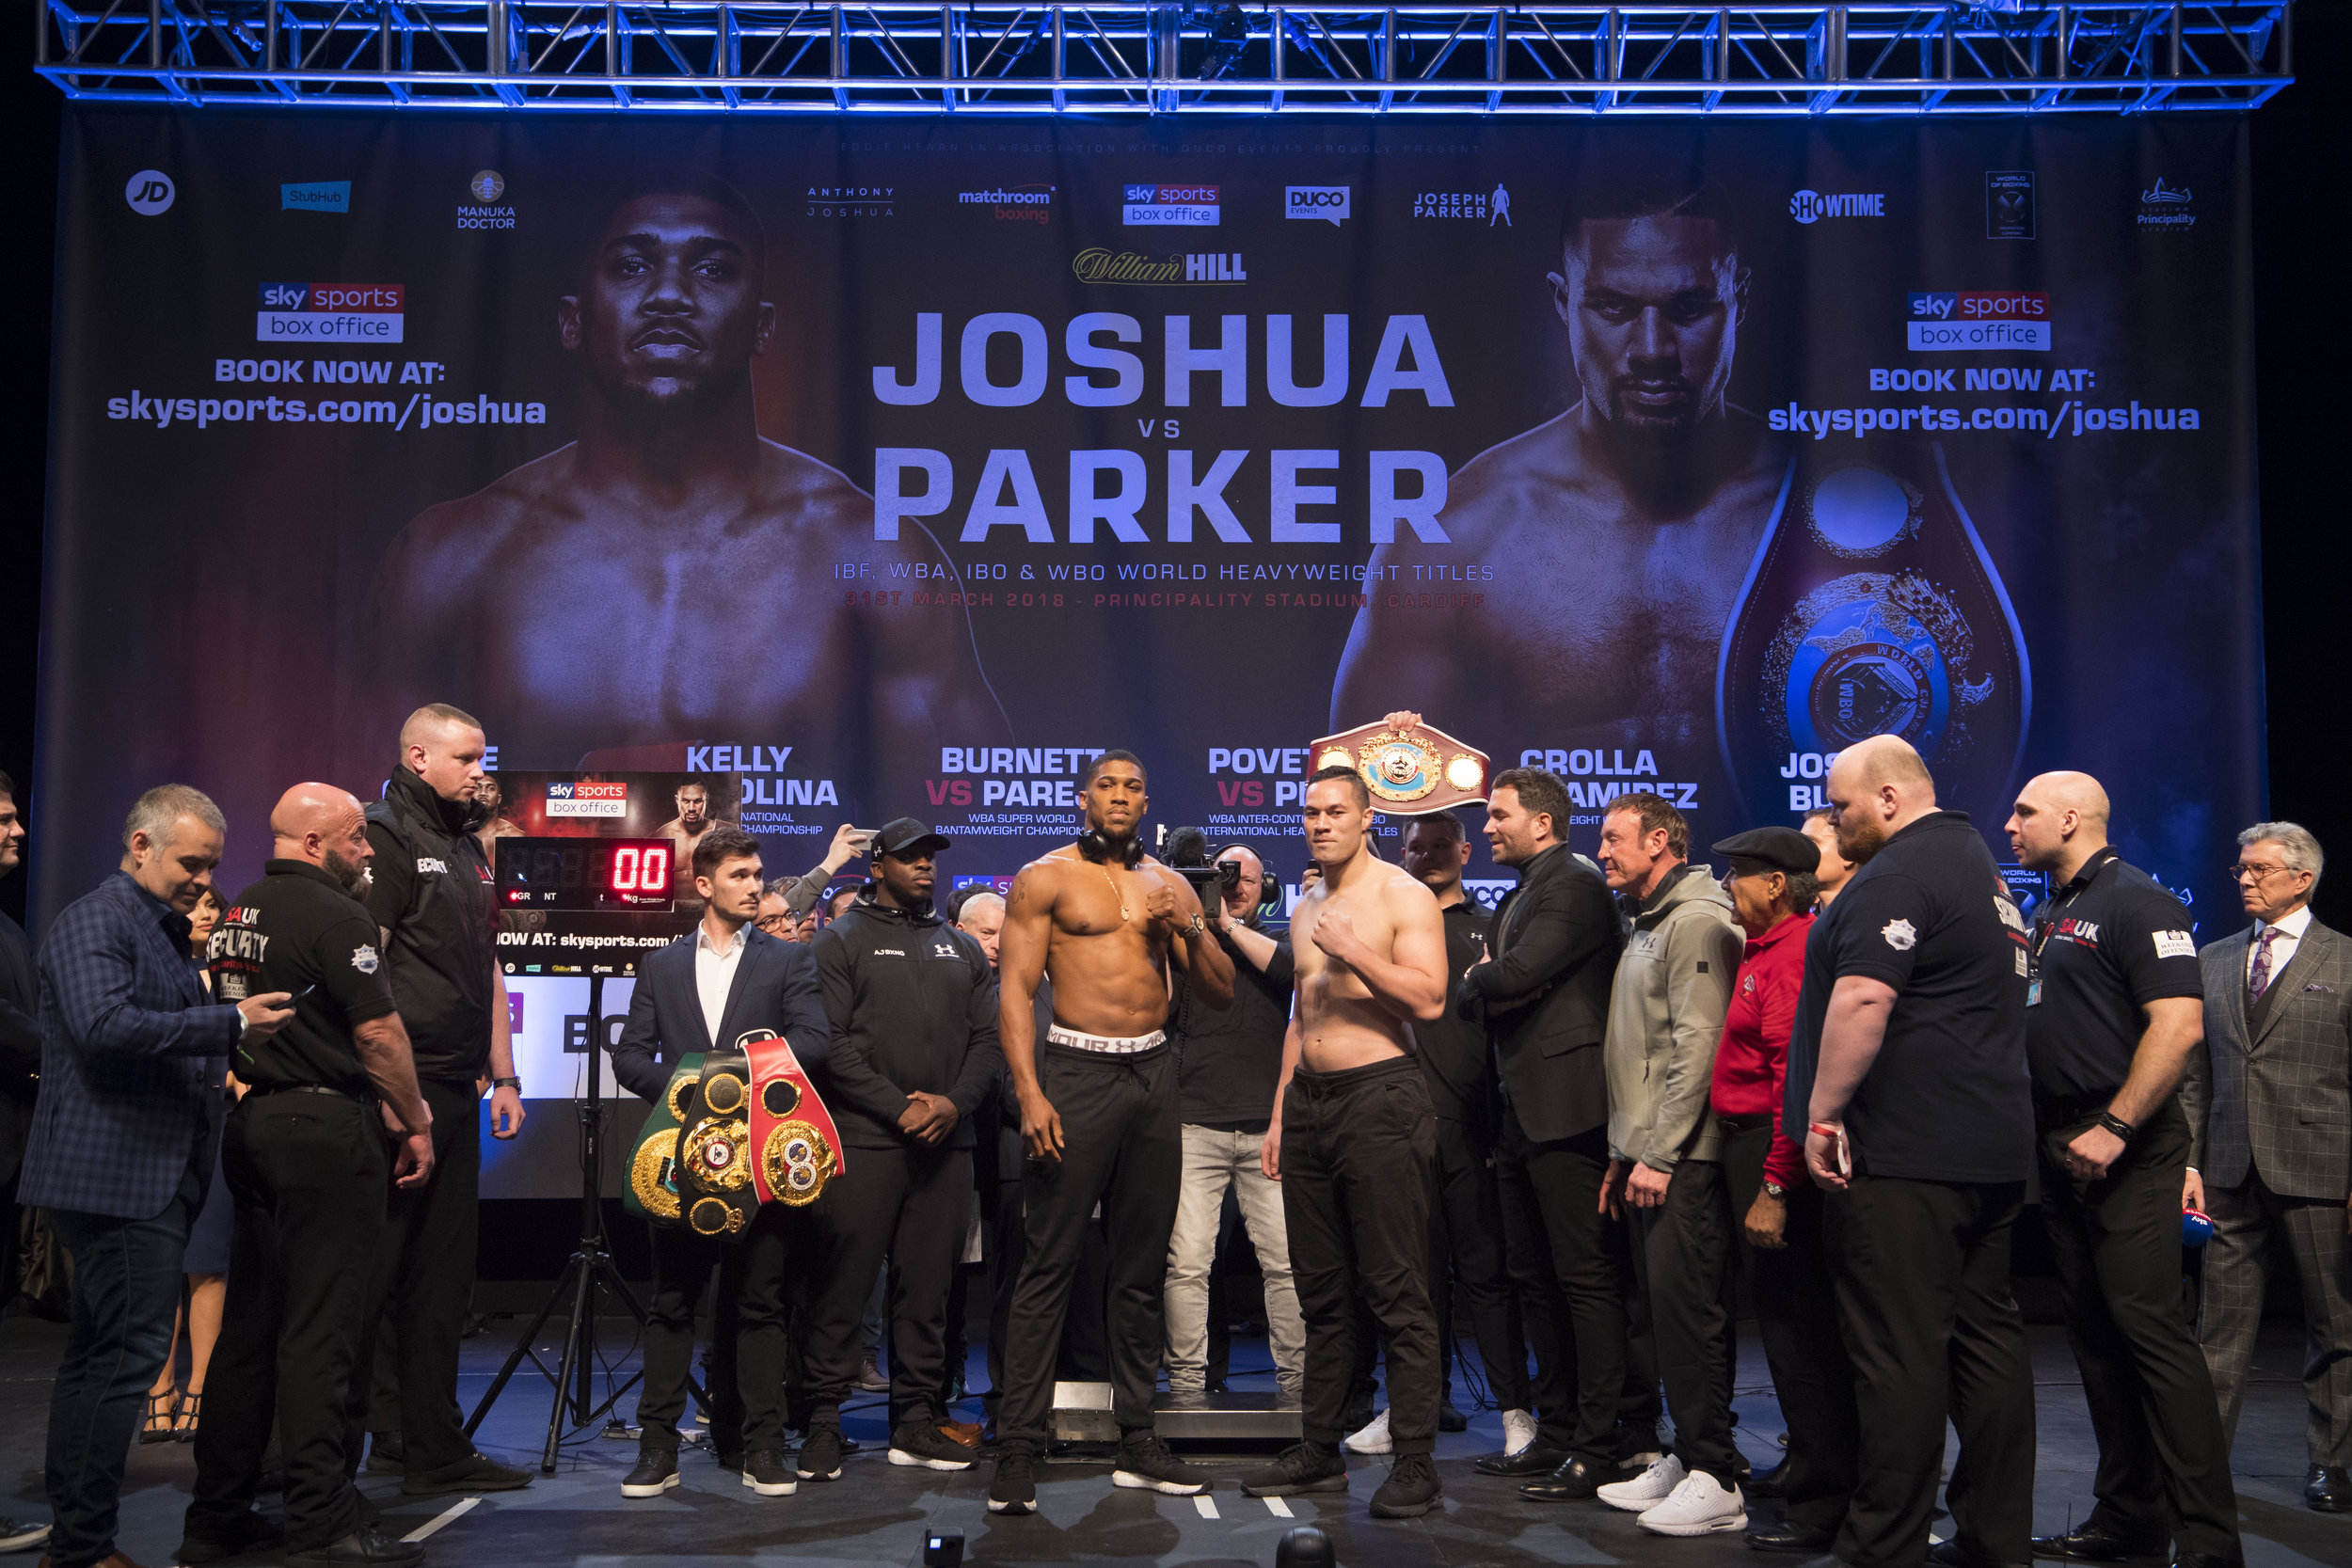 CARDIFF, WALES - MARCH 30: Anthony Joshua (L) and Joseph Parker (R) weigh-in at the Motorpoint Arena on March 30, 2018 in Cardiff, Wales. Anthony Joshua will fight Joseph Parker in a heavyweight unification match at the Principality Stadium in Cardiff on March 31. (Photo by Matthew Horwood/Getty Images)